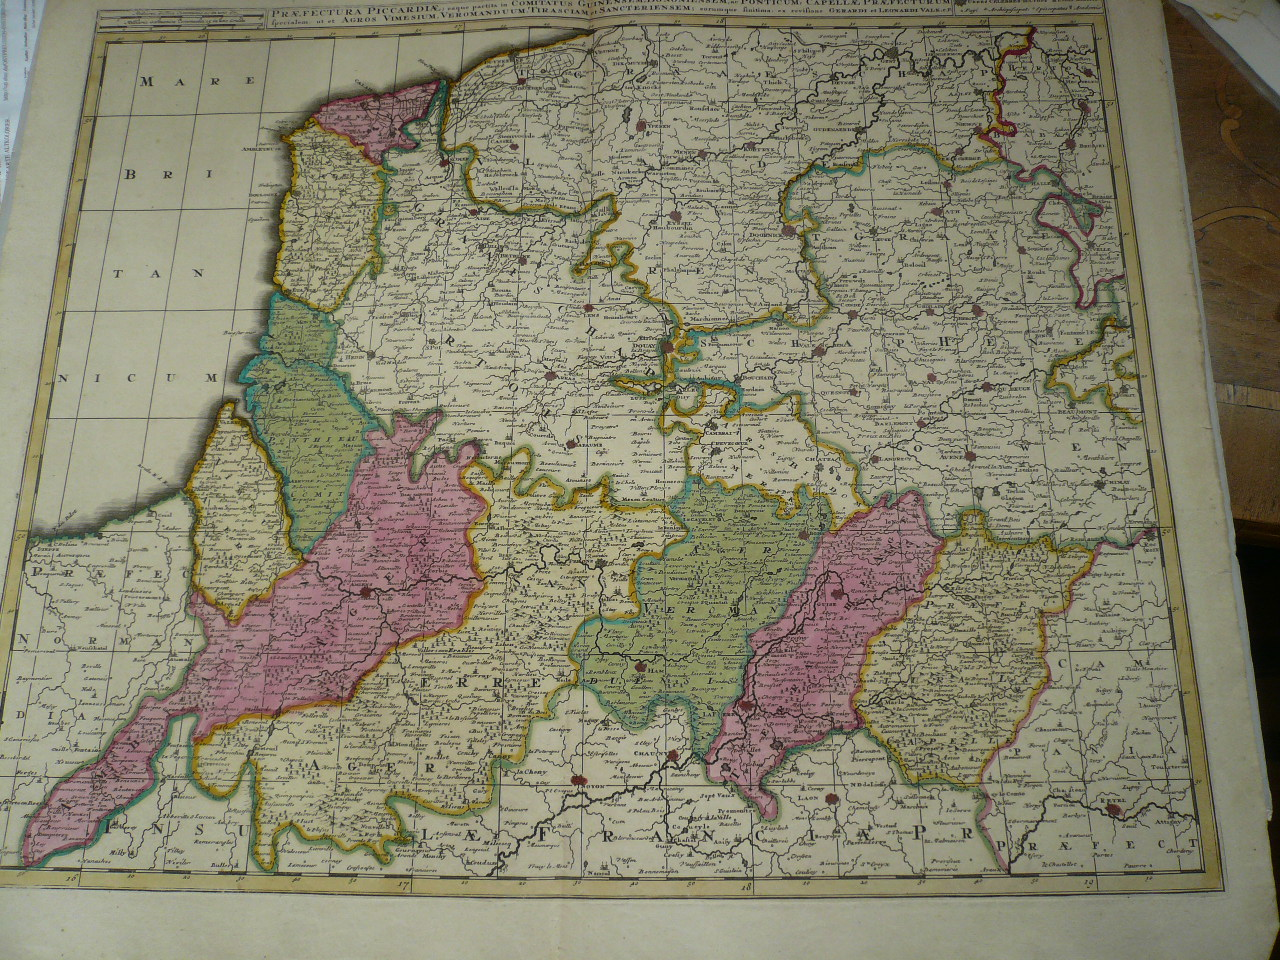 Picardia, map, Valk anno 1700, old colours Coppermap, edited by